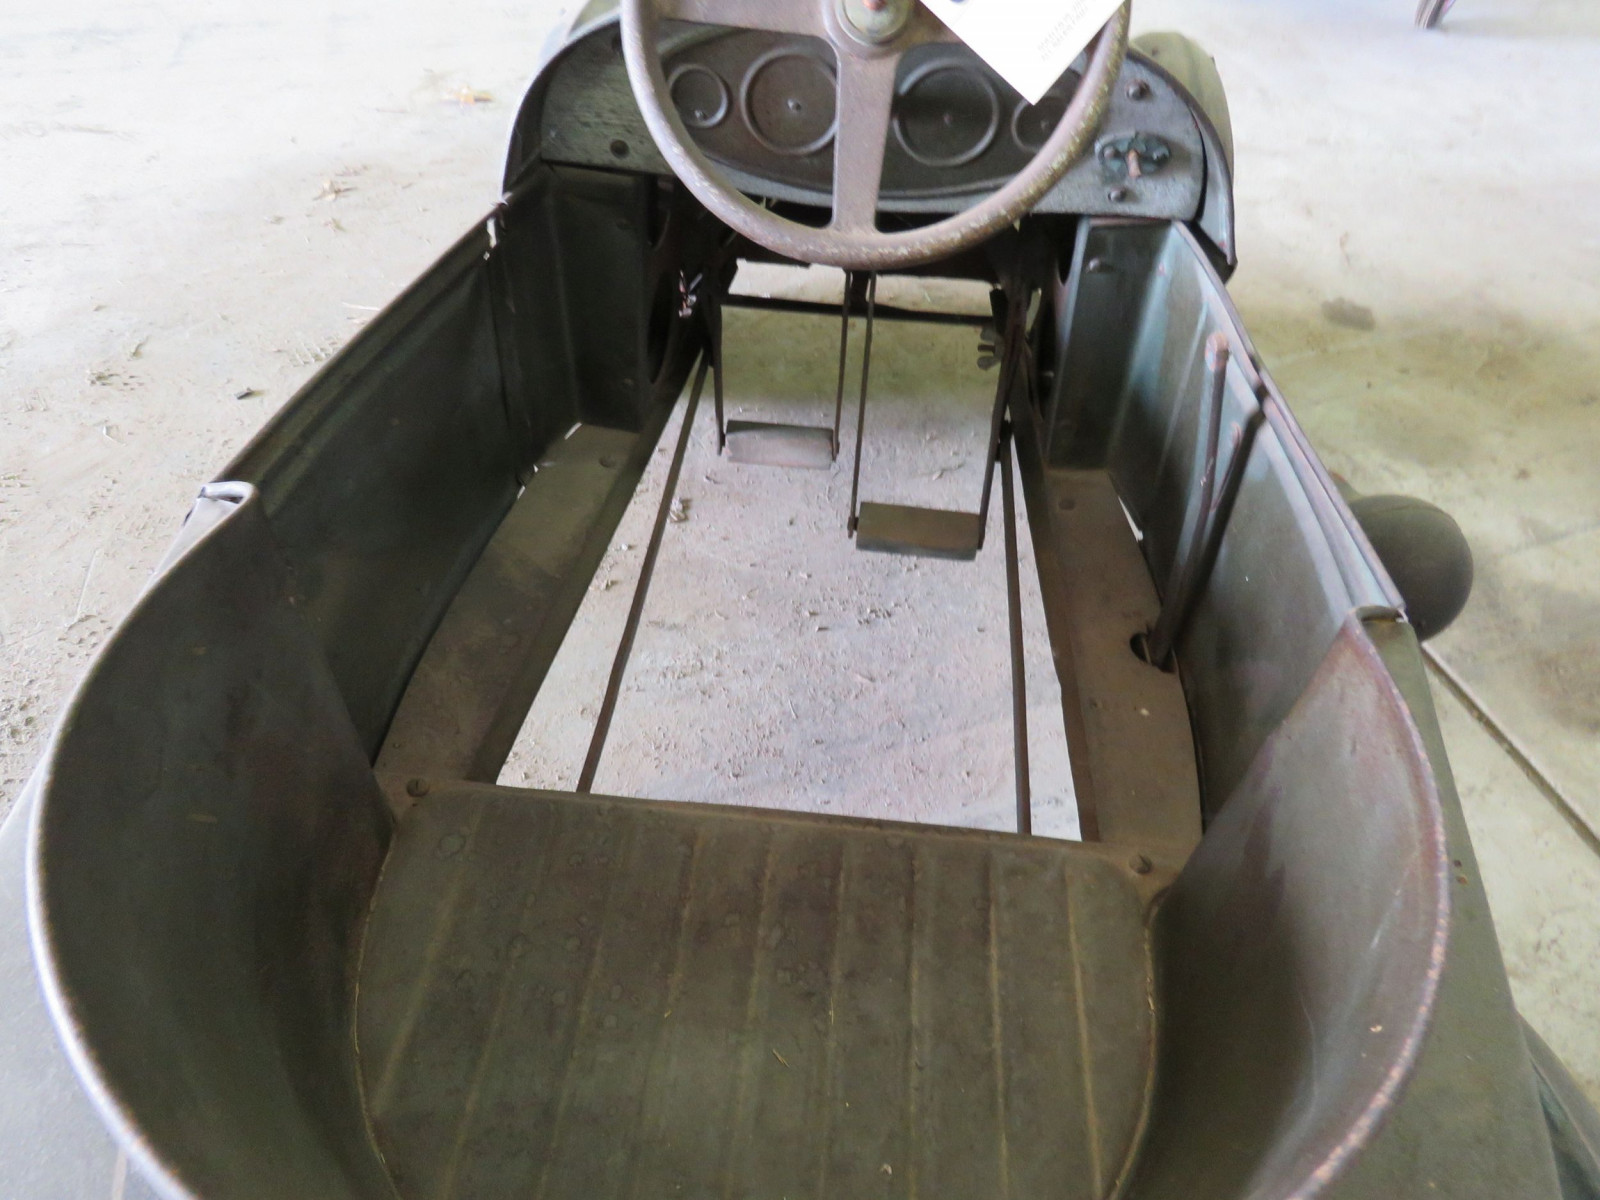 Vintage Regal Cycles Roadster Pedal Car - Image 8